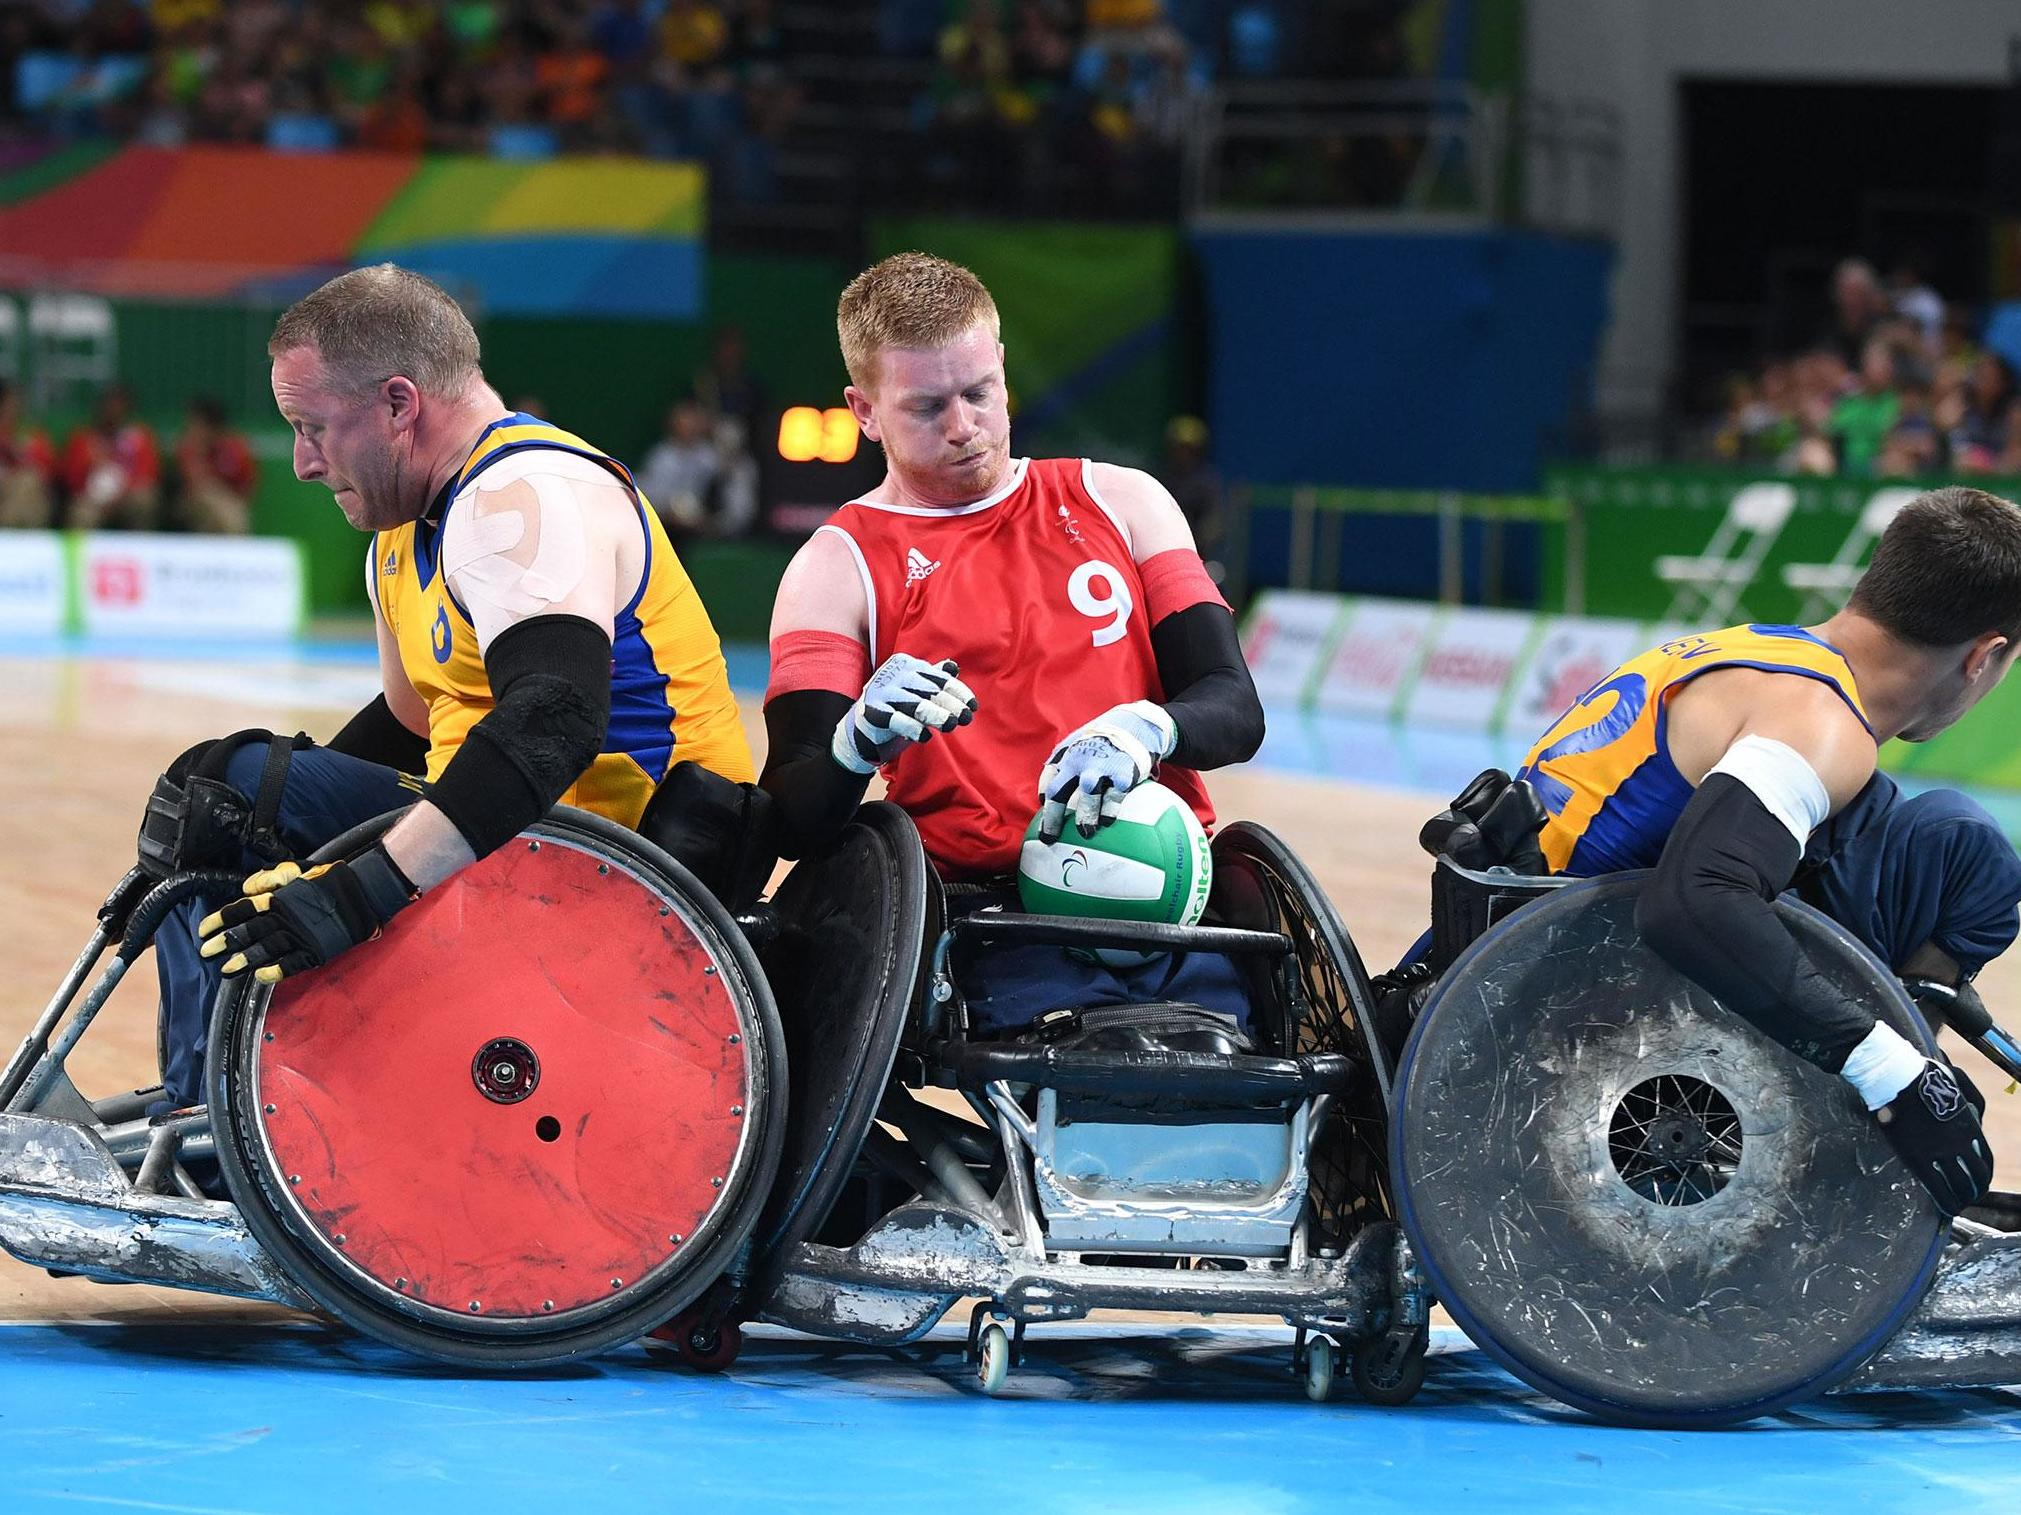 Wheelchair rugby secures £500,000 investment for Tokyo 2020 as part of £3m Aspiration Fund